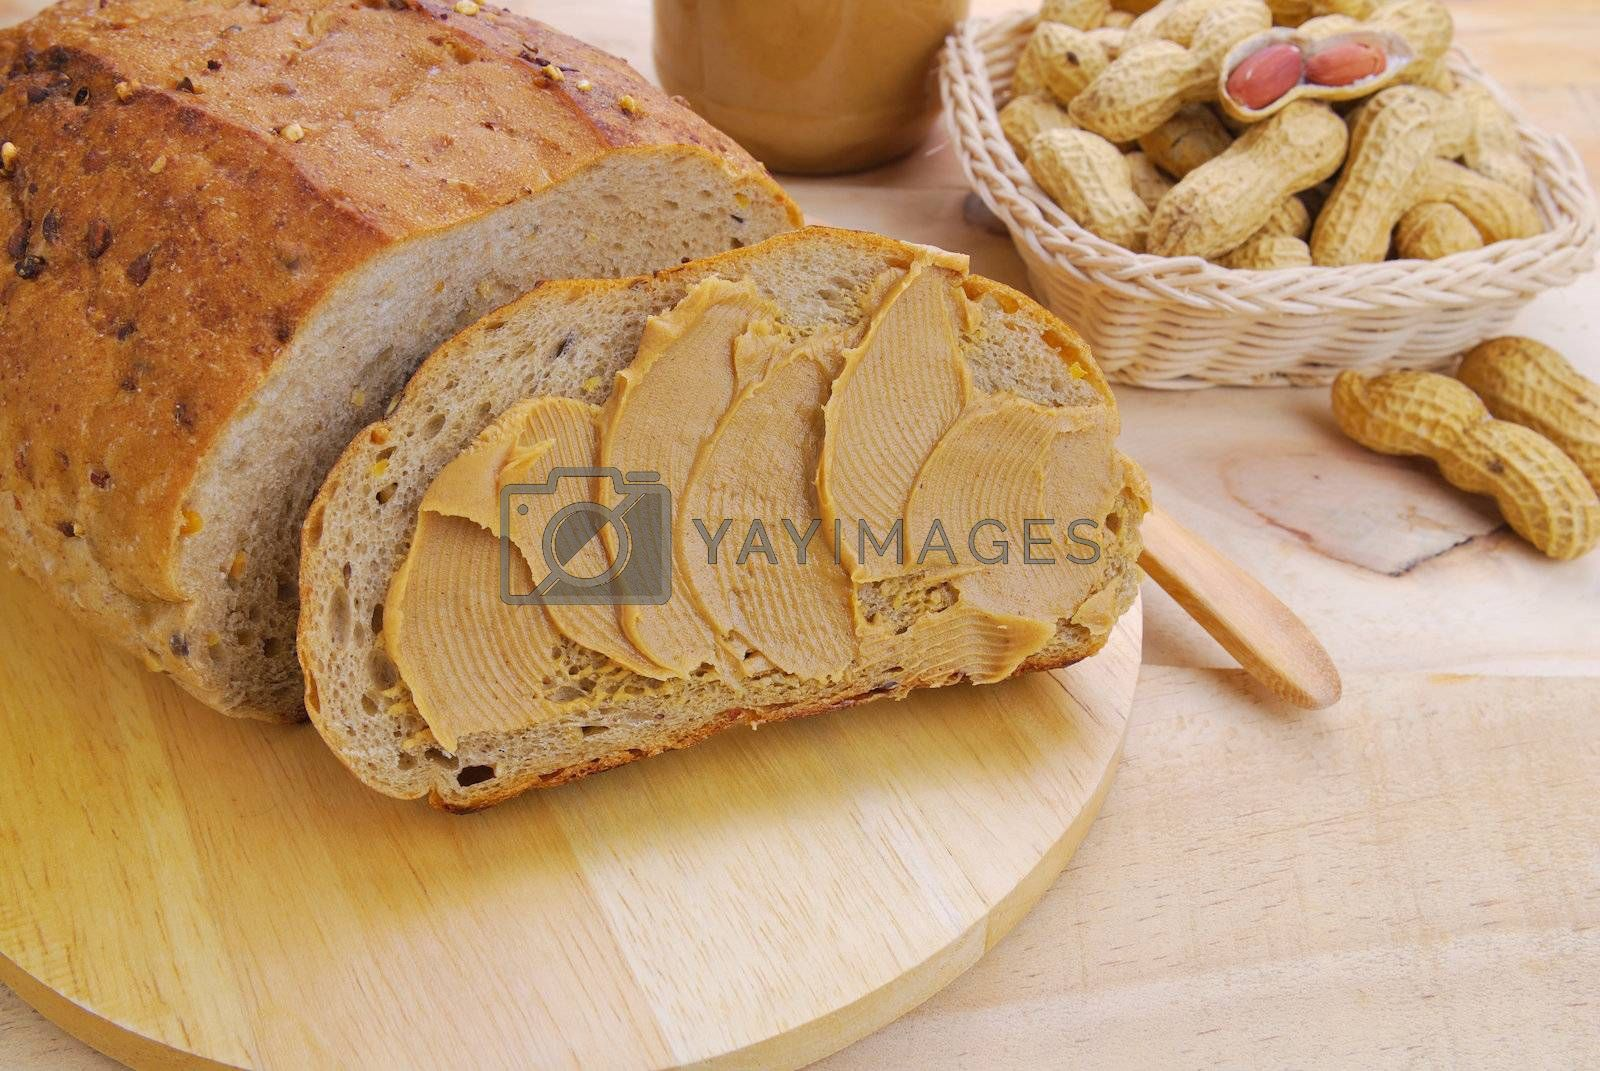 Royalty free image of Peanut butter and whole grain , whole wheat bread by teen00000